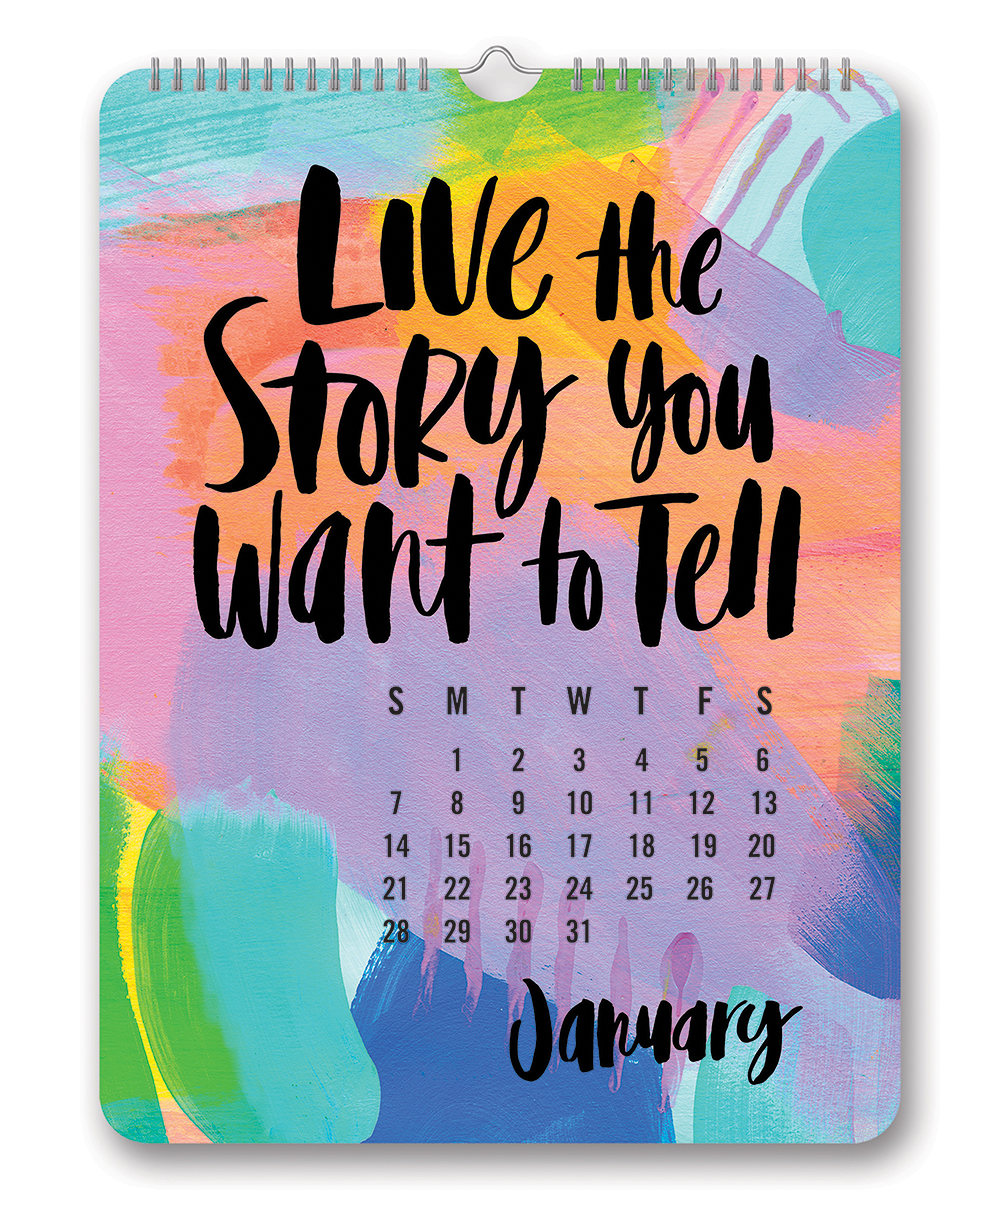 Make Today Ridiculously Amazing Poster Calendar 2018 by Orange Circle Studio back 9781682581766